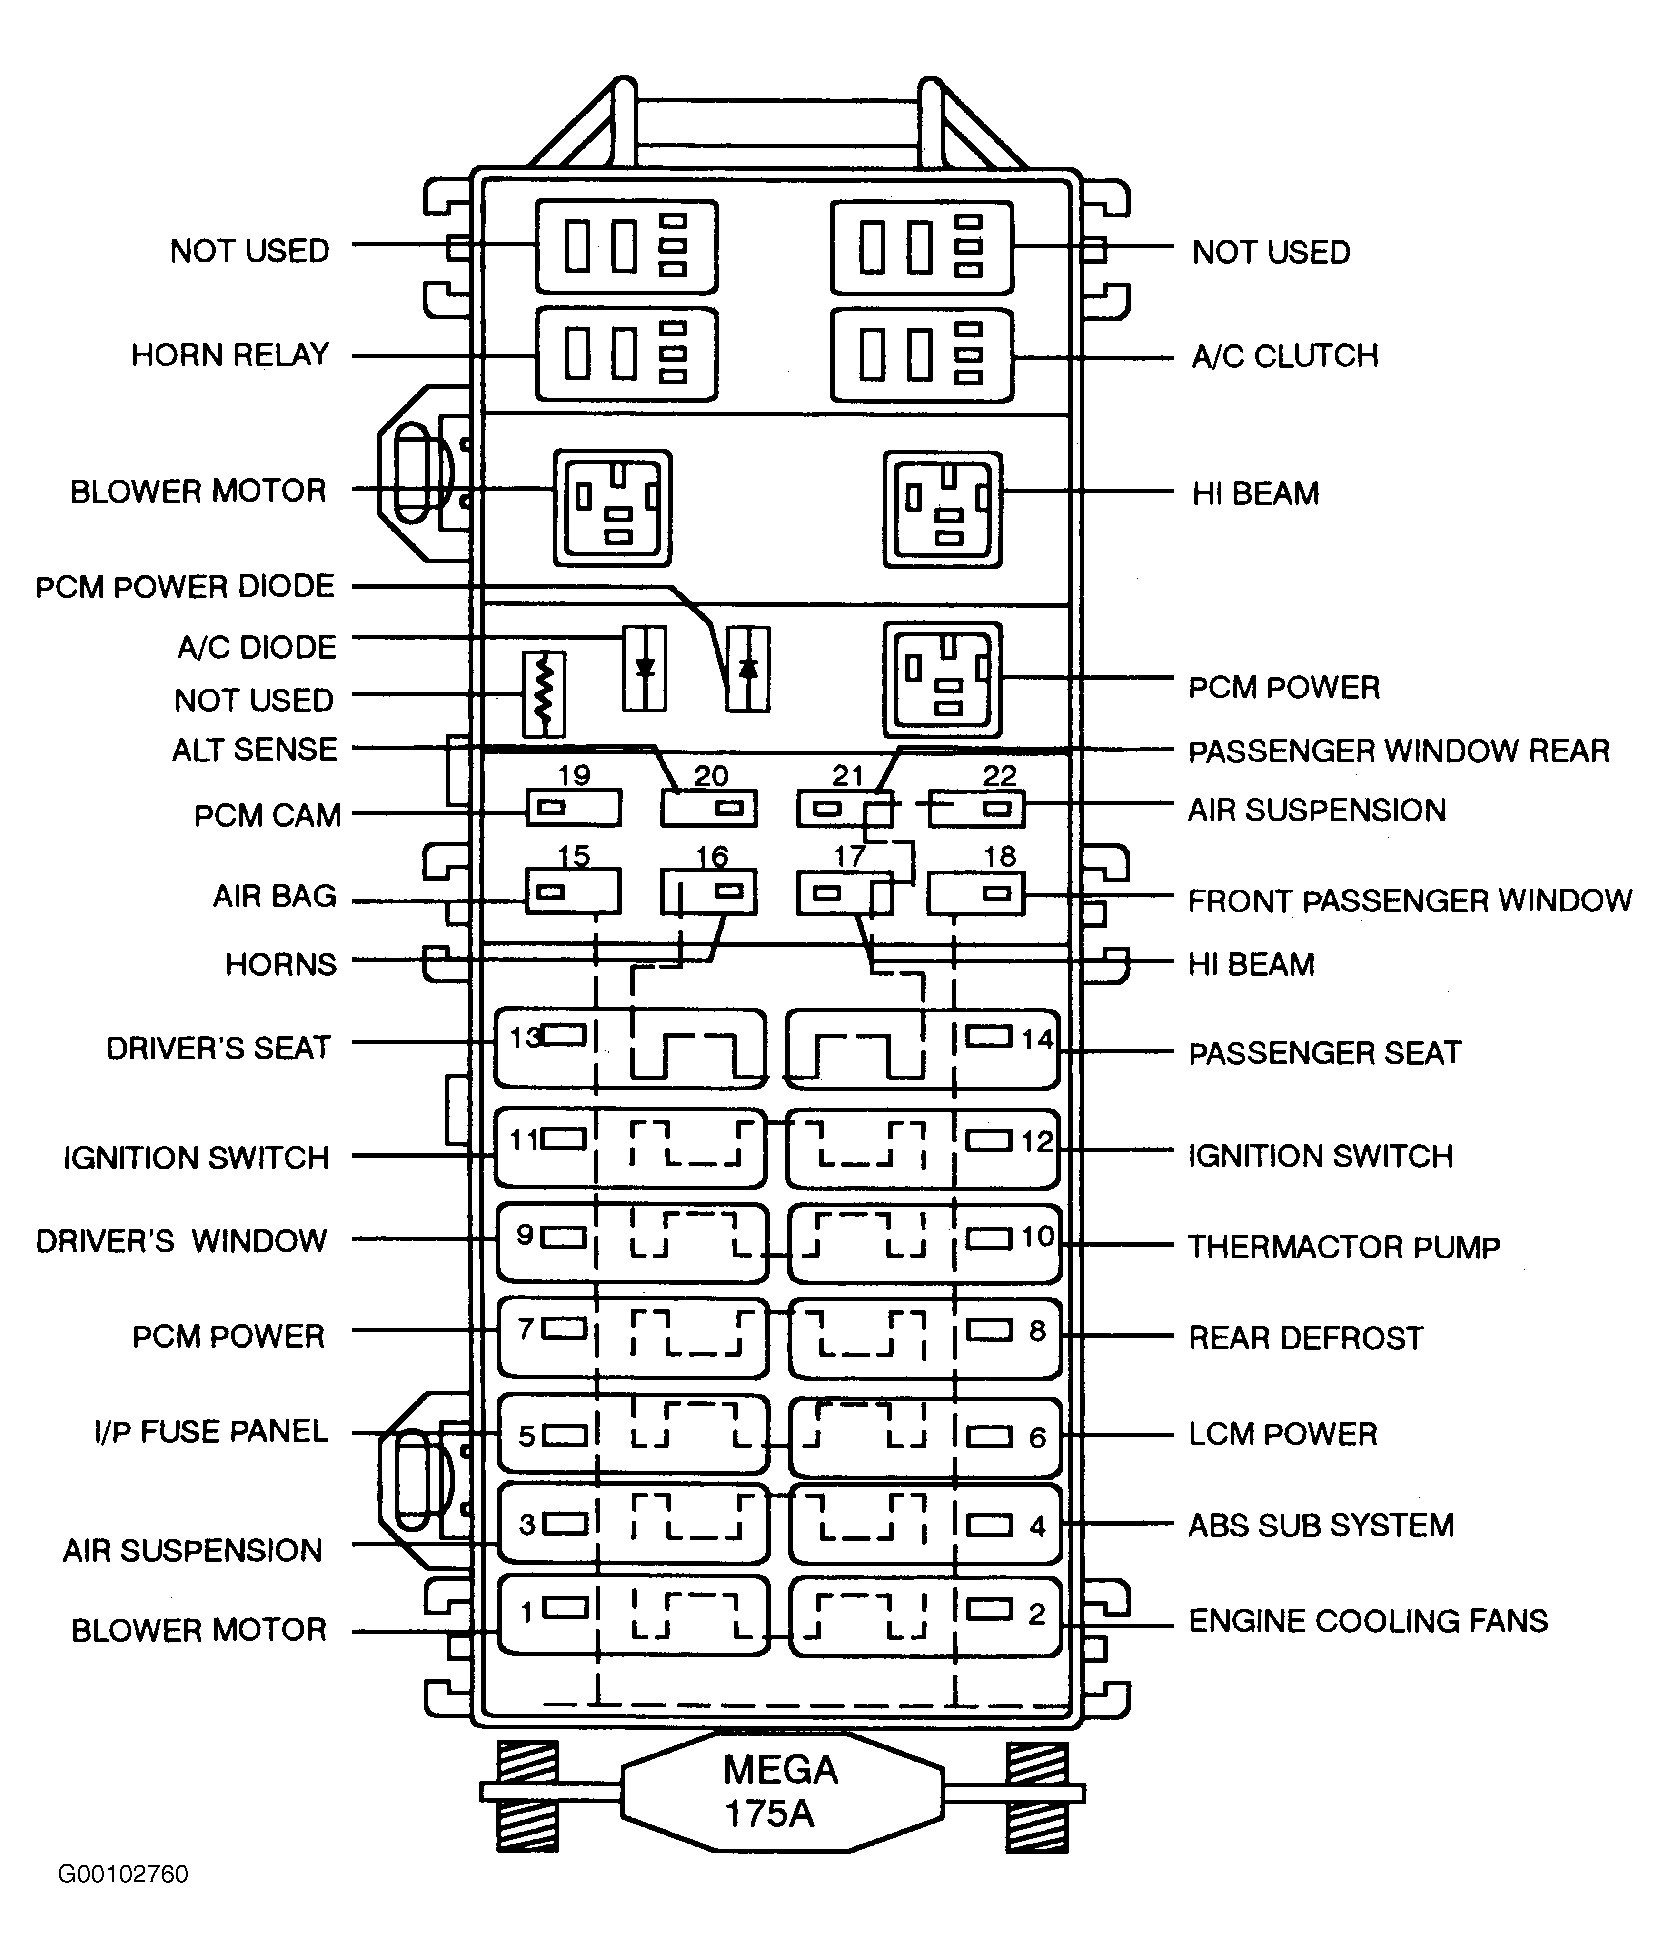 gsr motor diagram free download wiring diagrams pictures